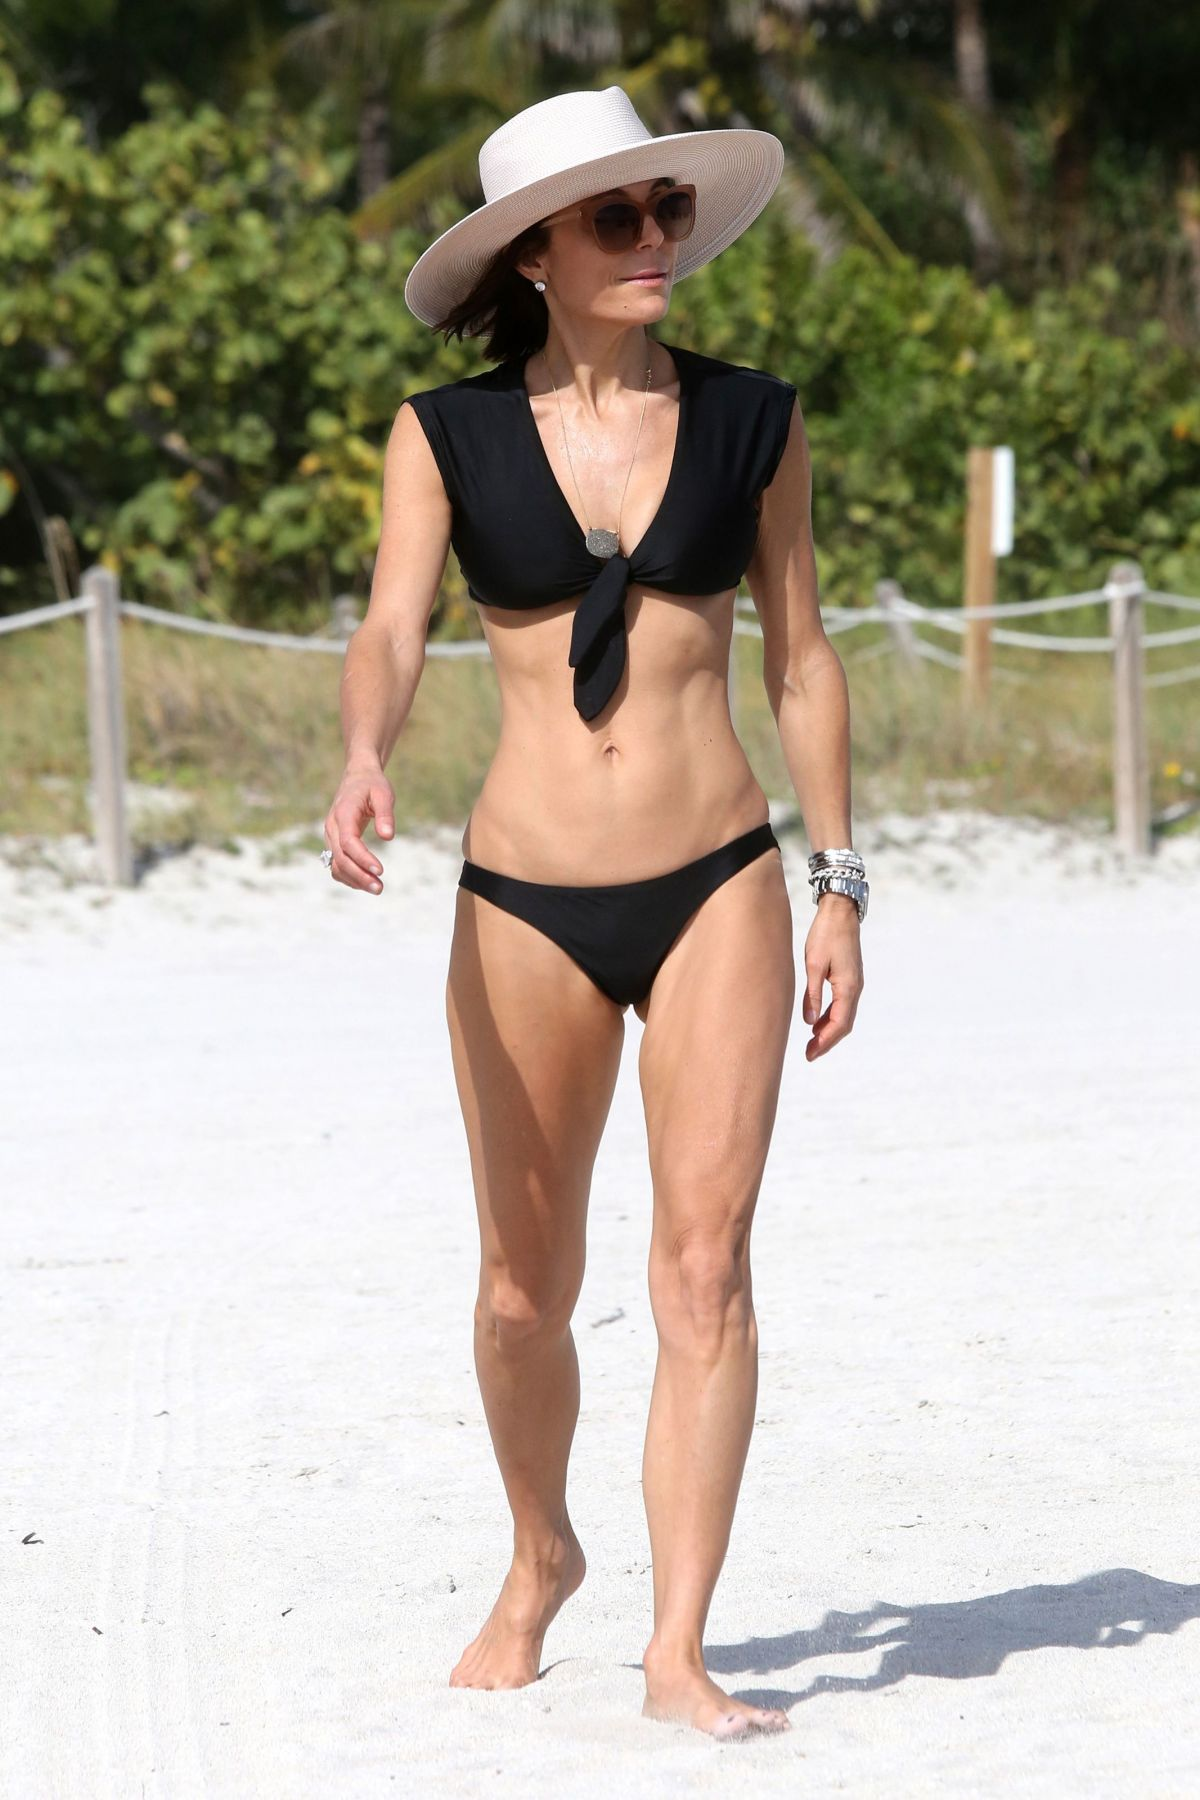 BETHENNY FRANKEL in Bikini on the Beach in Miami 12/05/2016   bethenny-frankel-in-bikini-on-the-beach-in-miami-12-05-2016_4